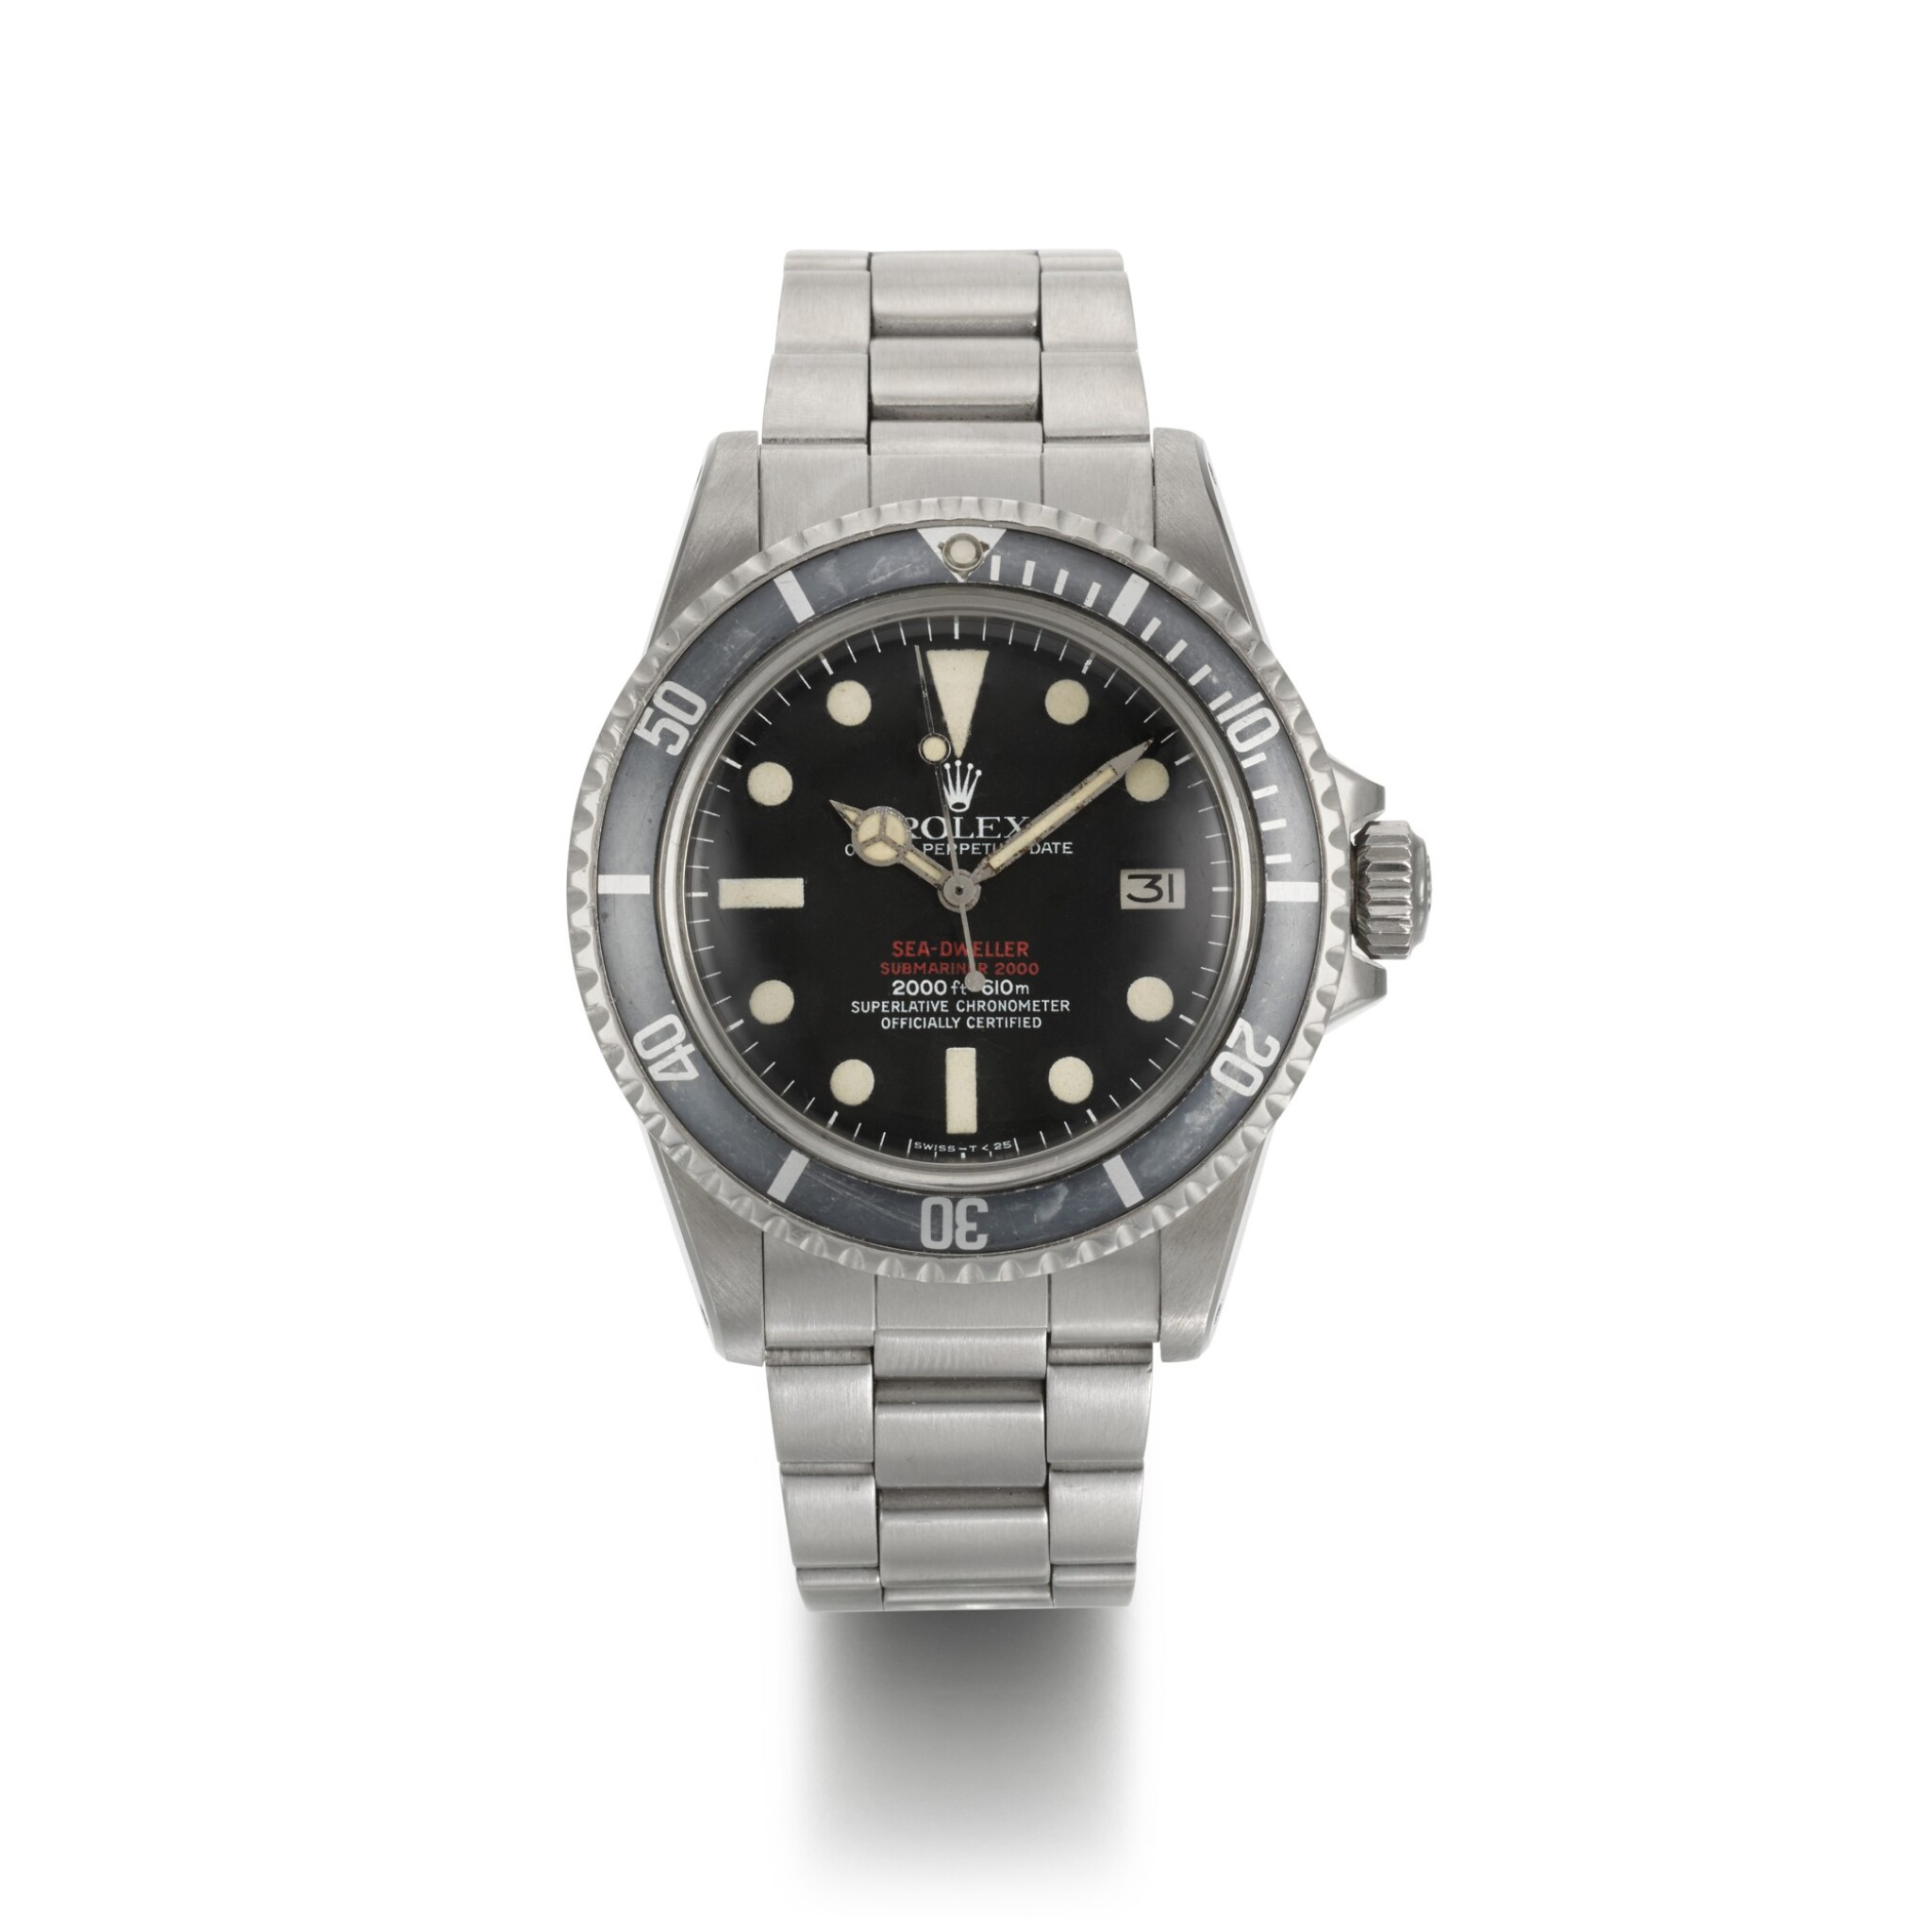 ROLEX | SEA-DWELLER 'DOUBLE RED', REF 1665, STAINLESS STEEL WRISTWATCH WITH DATE AND BRACELET, CIRCA 1977